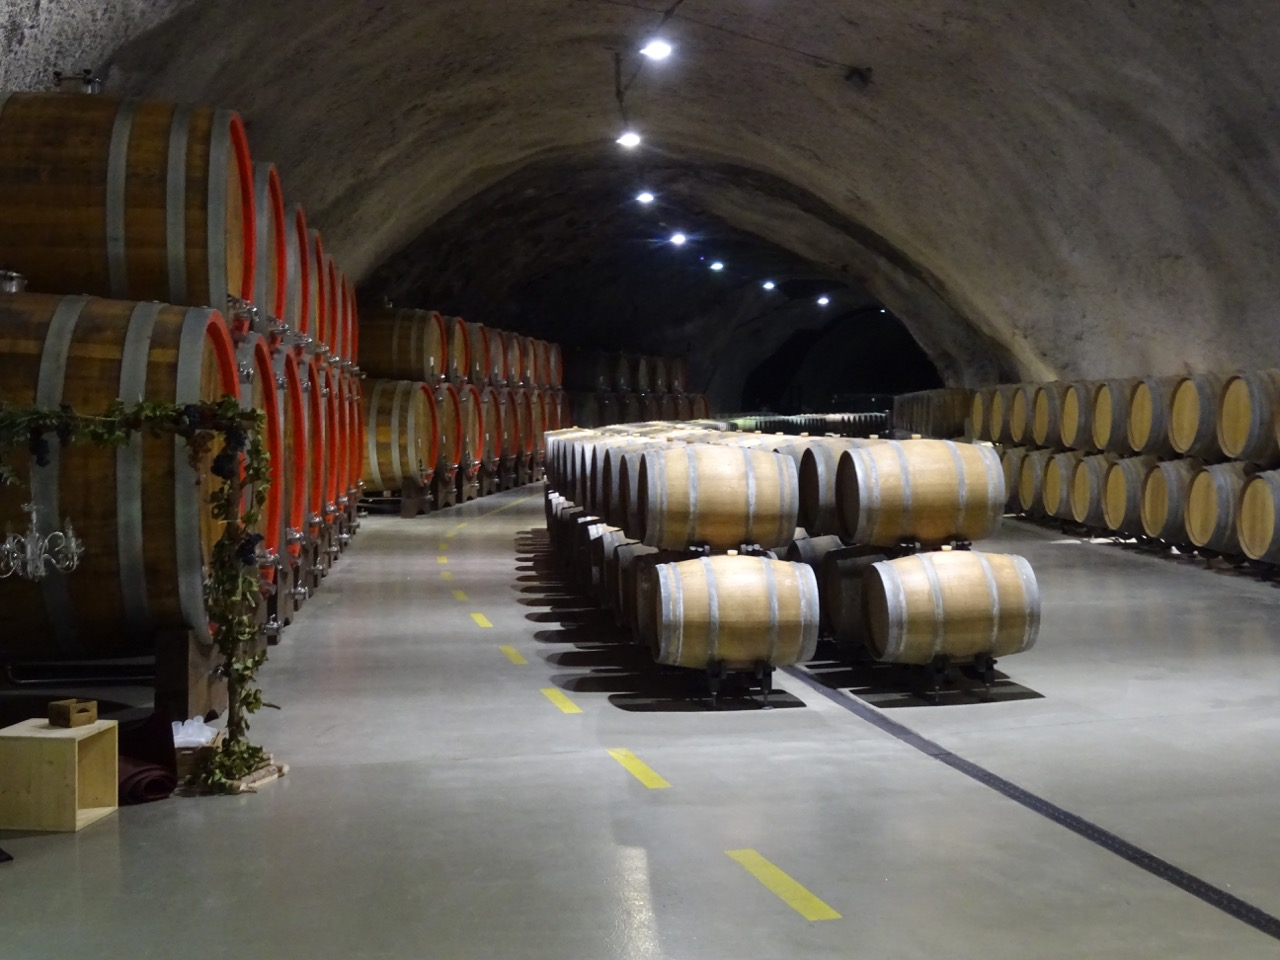 Inside the Plantaze cellar, which used to be an air force hanger